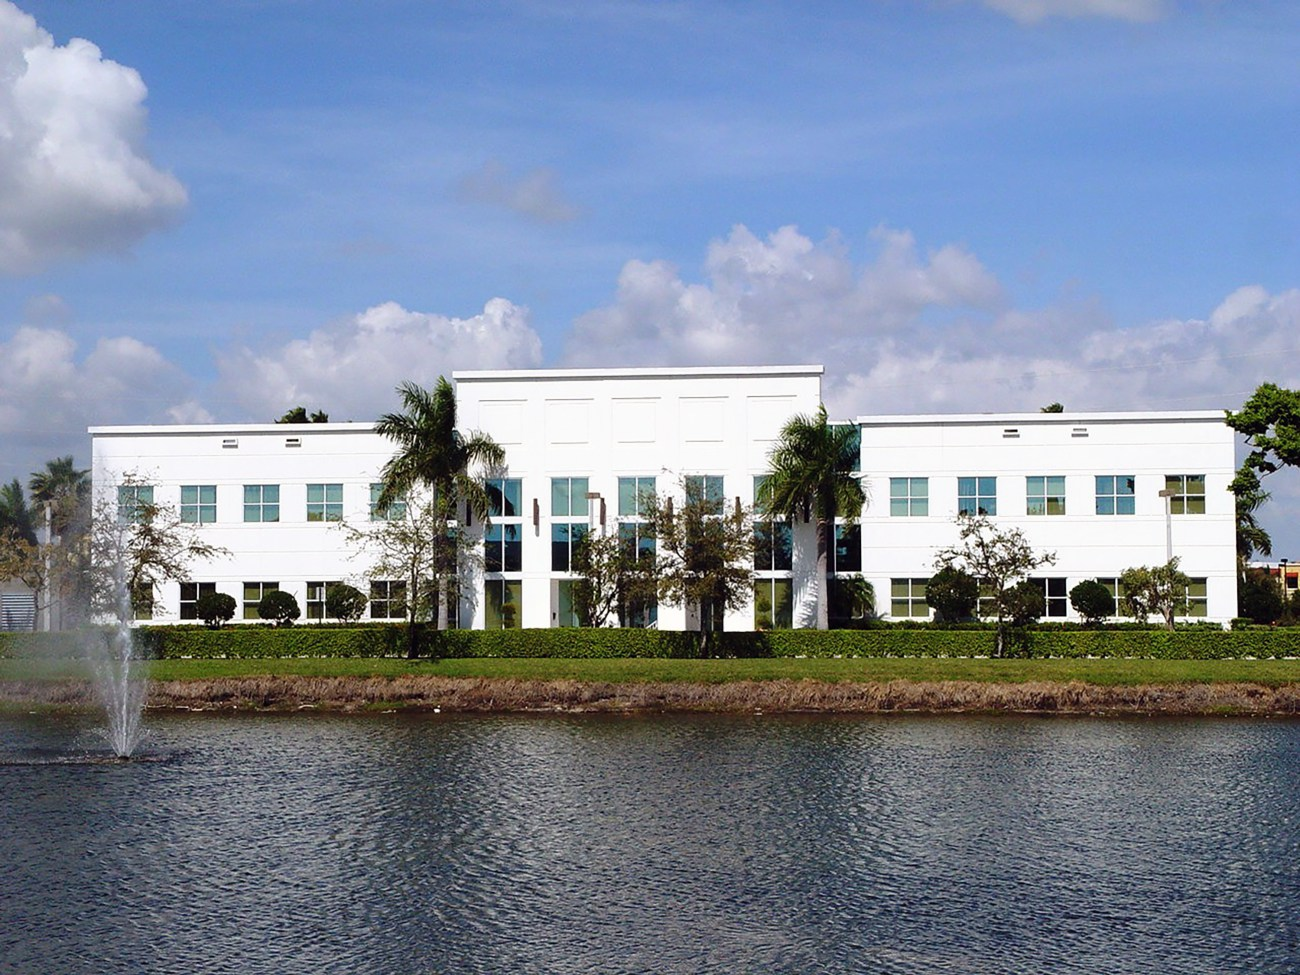 Cushman & Wakefield to Lease ±40,800-SF Office Building in Boca Raton